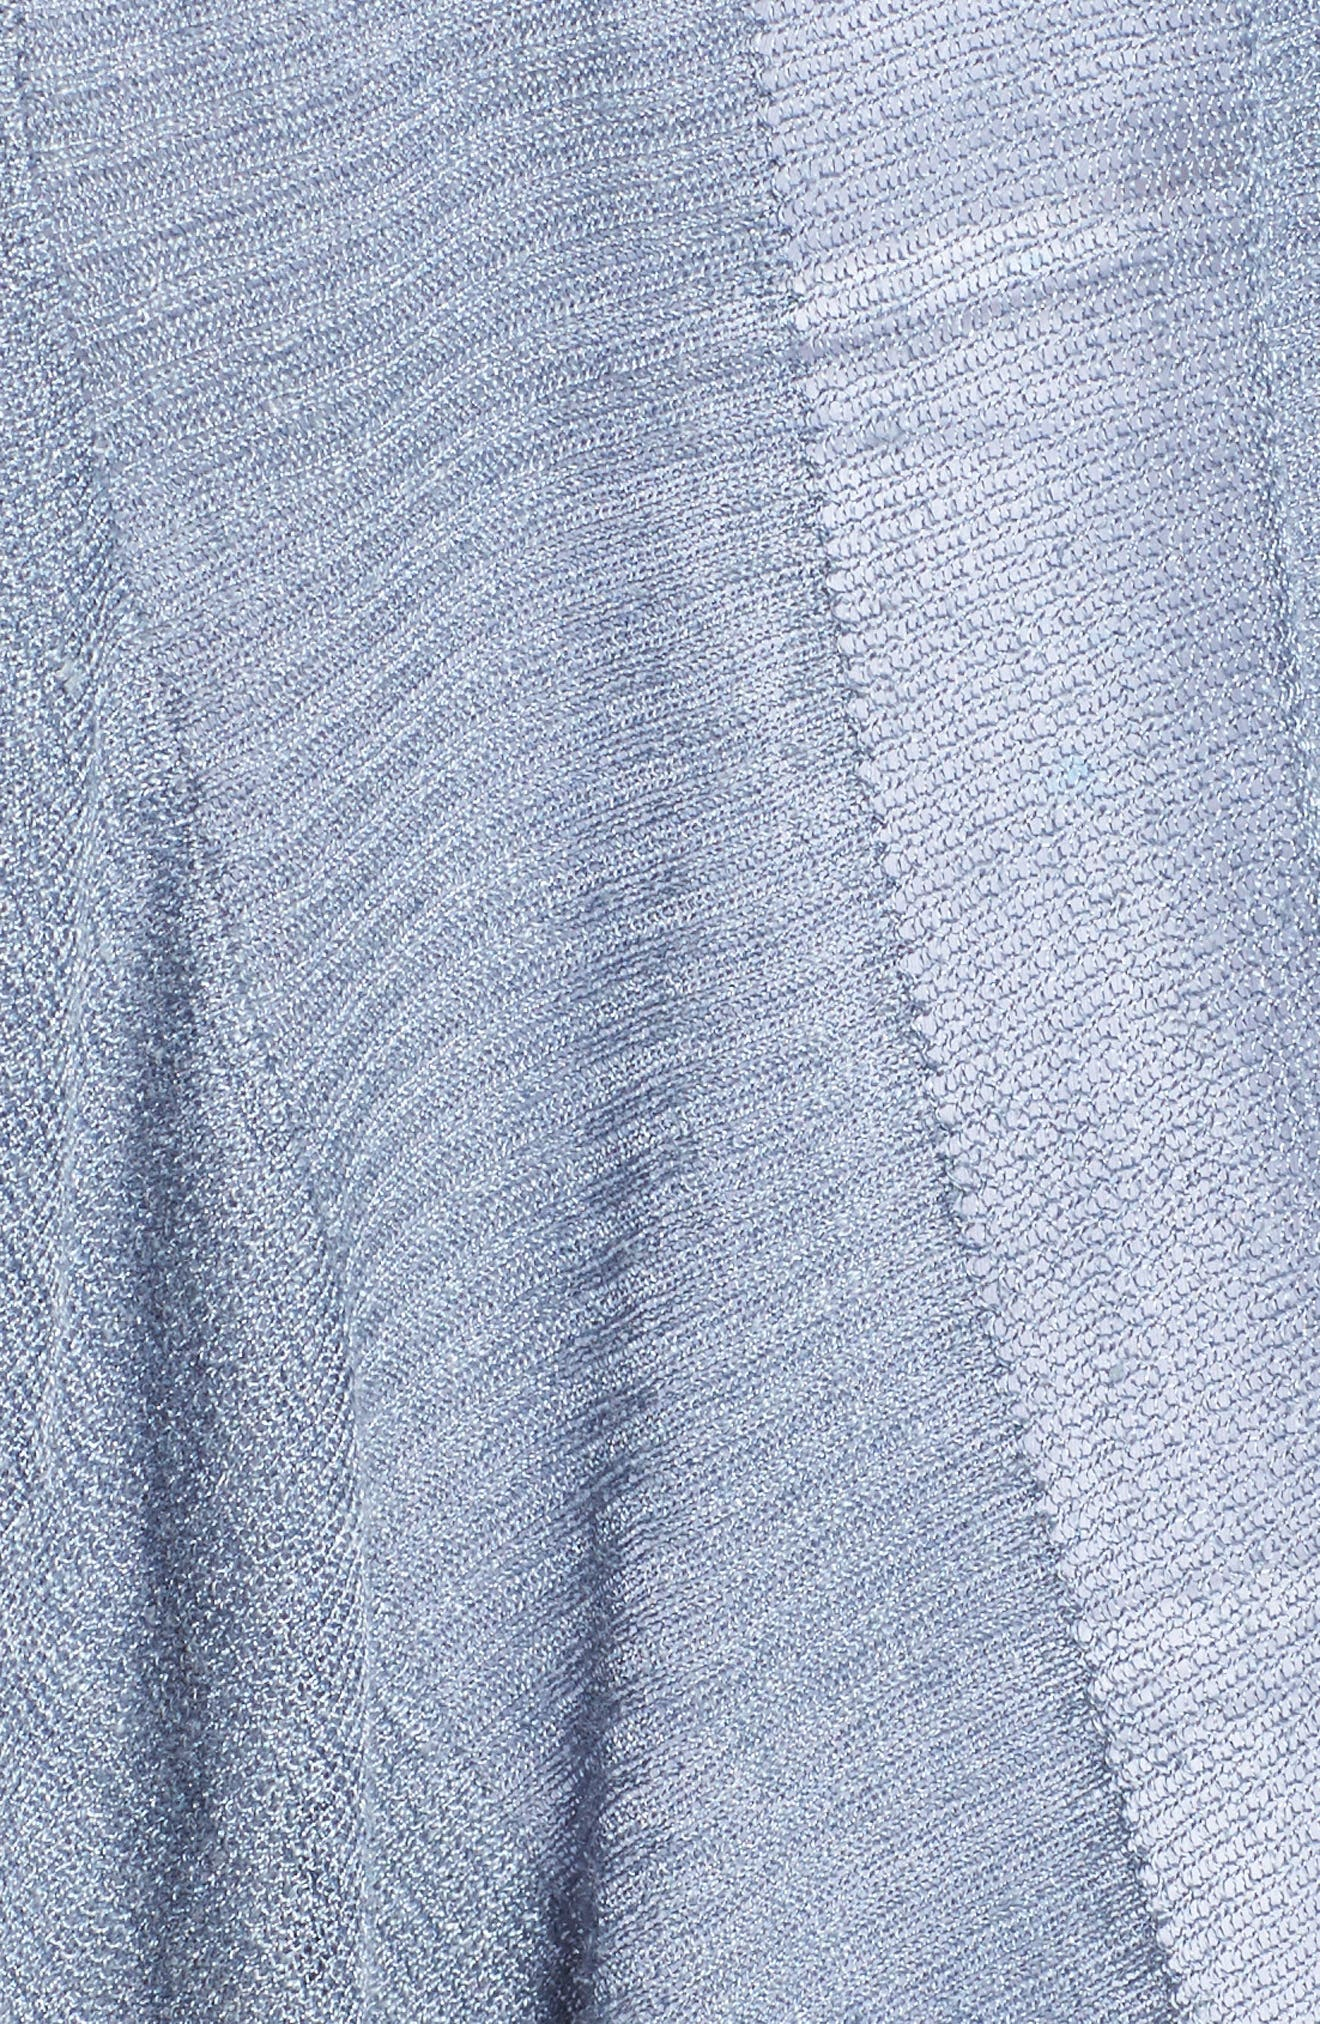 Ruffle Wave Linen Blend Cardigan,                             Alternate thumbnail 5, color,                             LIGHT INDIGO